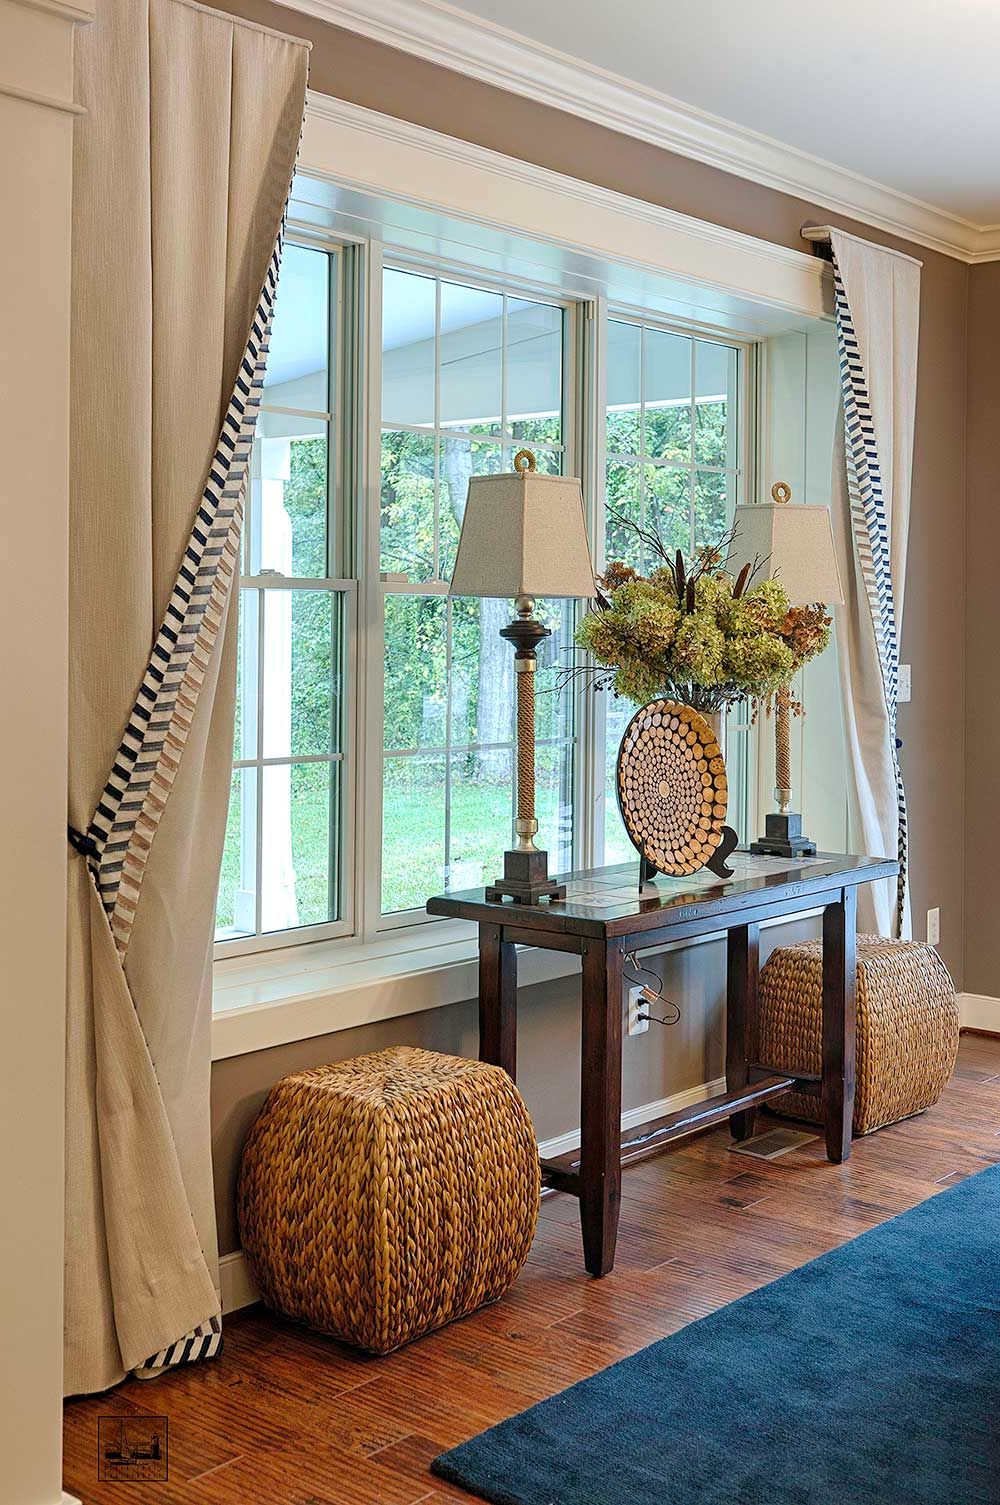 Baldwin home living room drapes pinterest living Window treatments for bay window in living room